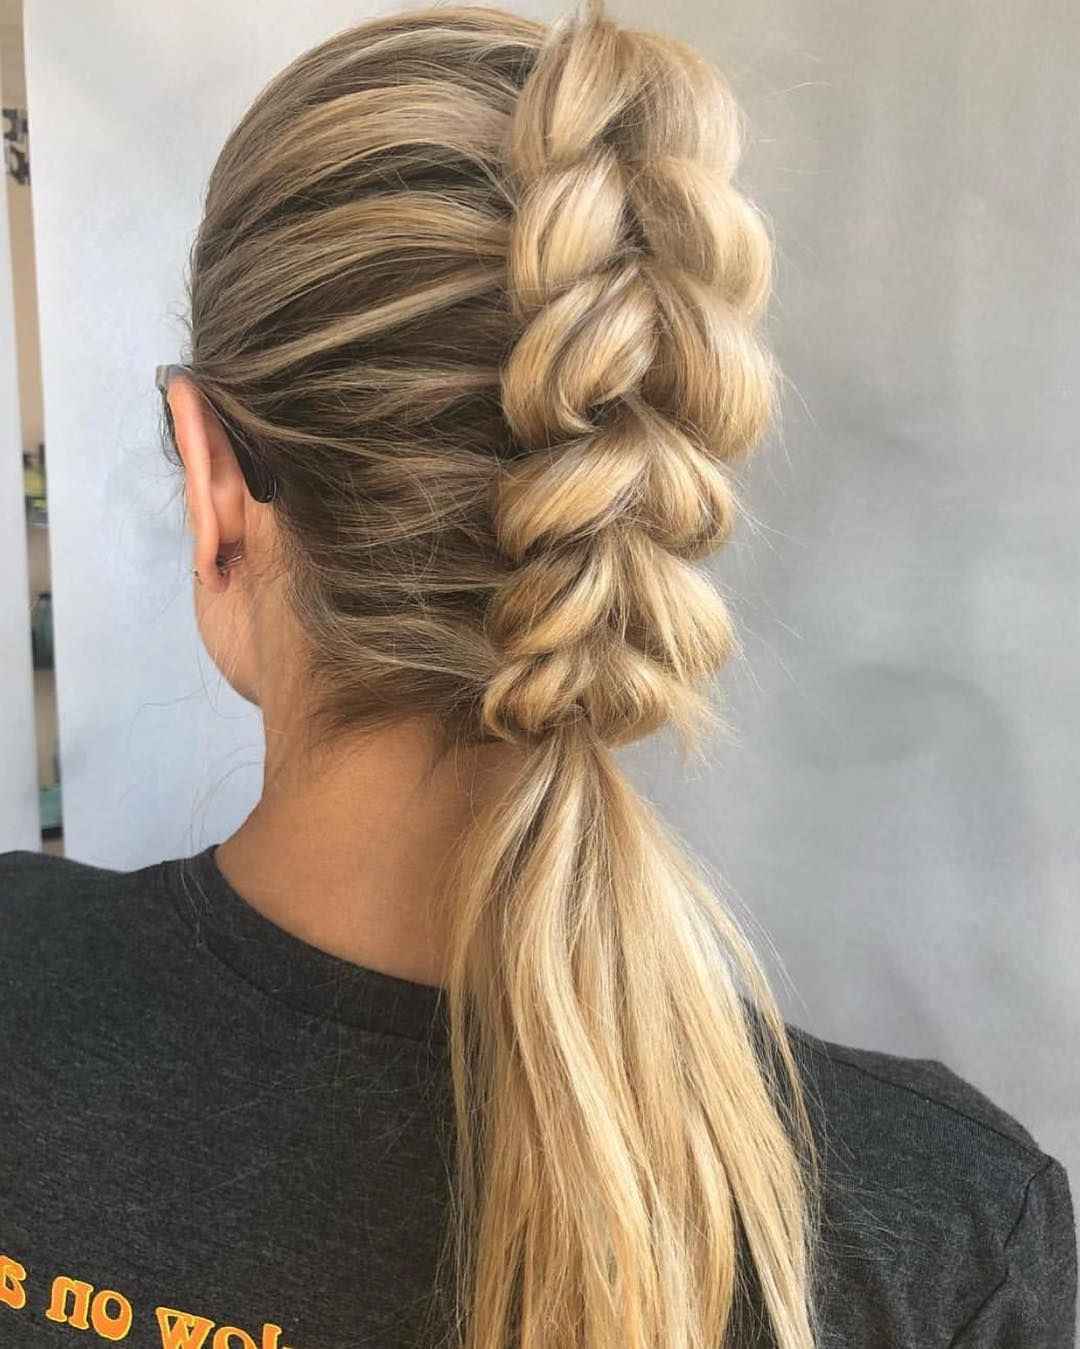 Preferred Grecian Inspired Ponytail Braid Hairstyles With Always A Fav ✨ Look Created@nicoledelawarestylist (View 15 of 20)